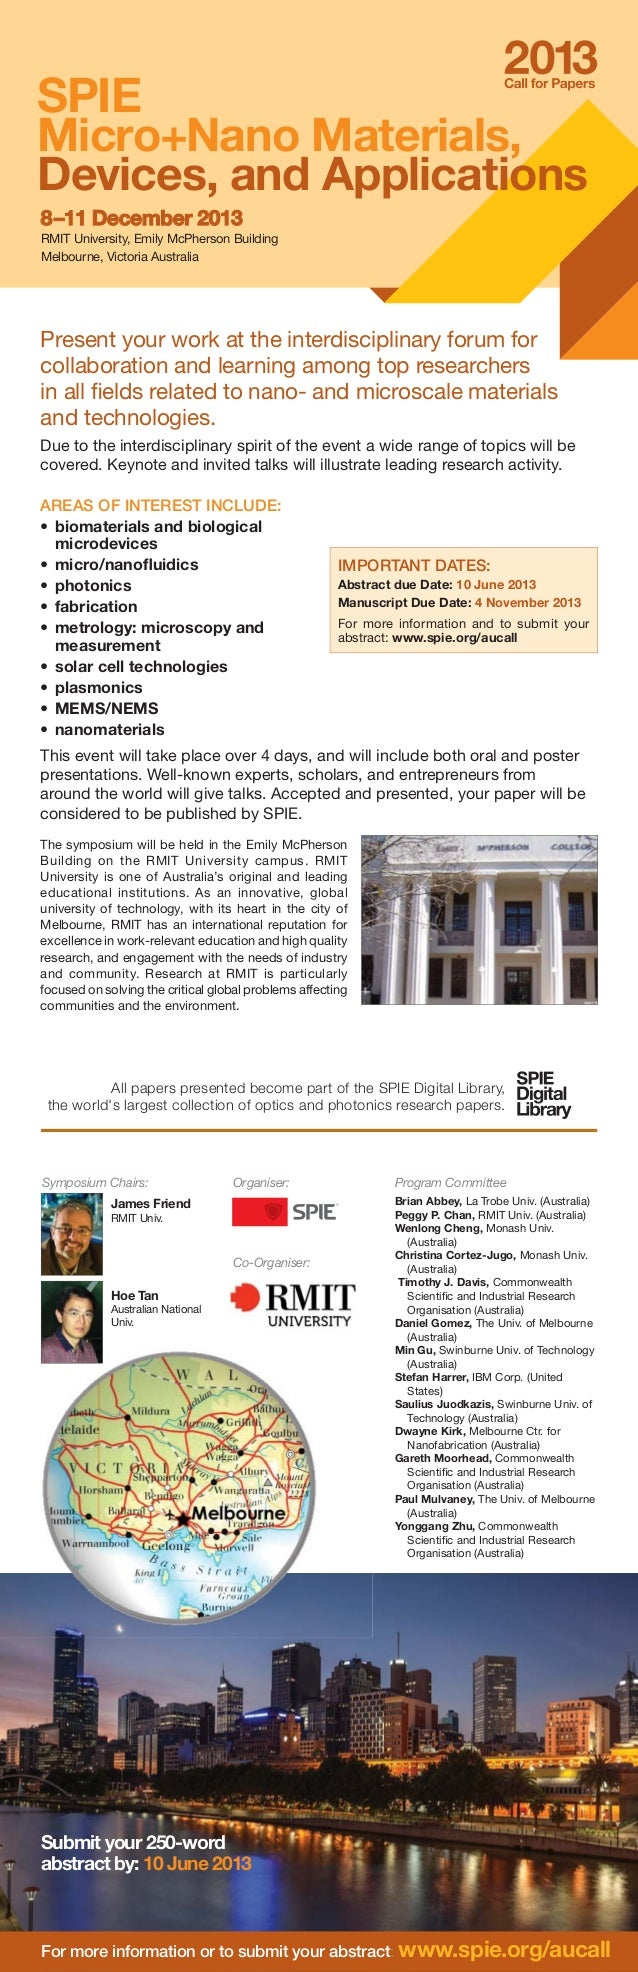 Spie micro+nano materials, devices and applications 8 11 december 2013